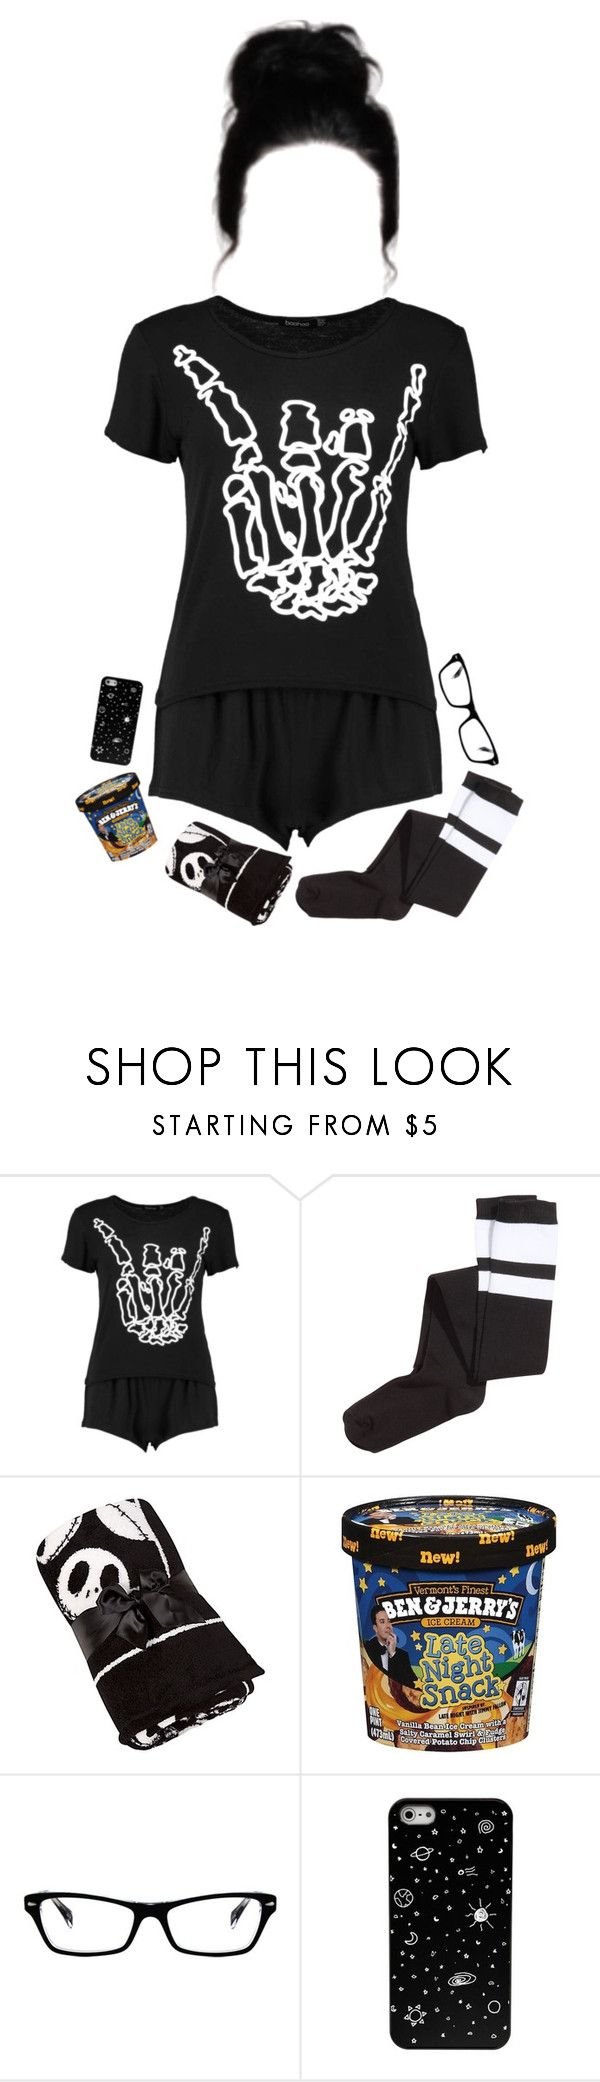 """""""It's my party and I'll cry if I want to"""" by xxghostlygracexx ❤ liked on Polyvore featuring H&M, Disney and Ray-Ban"""